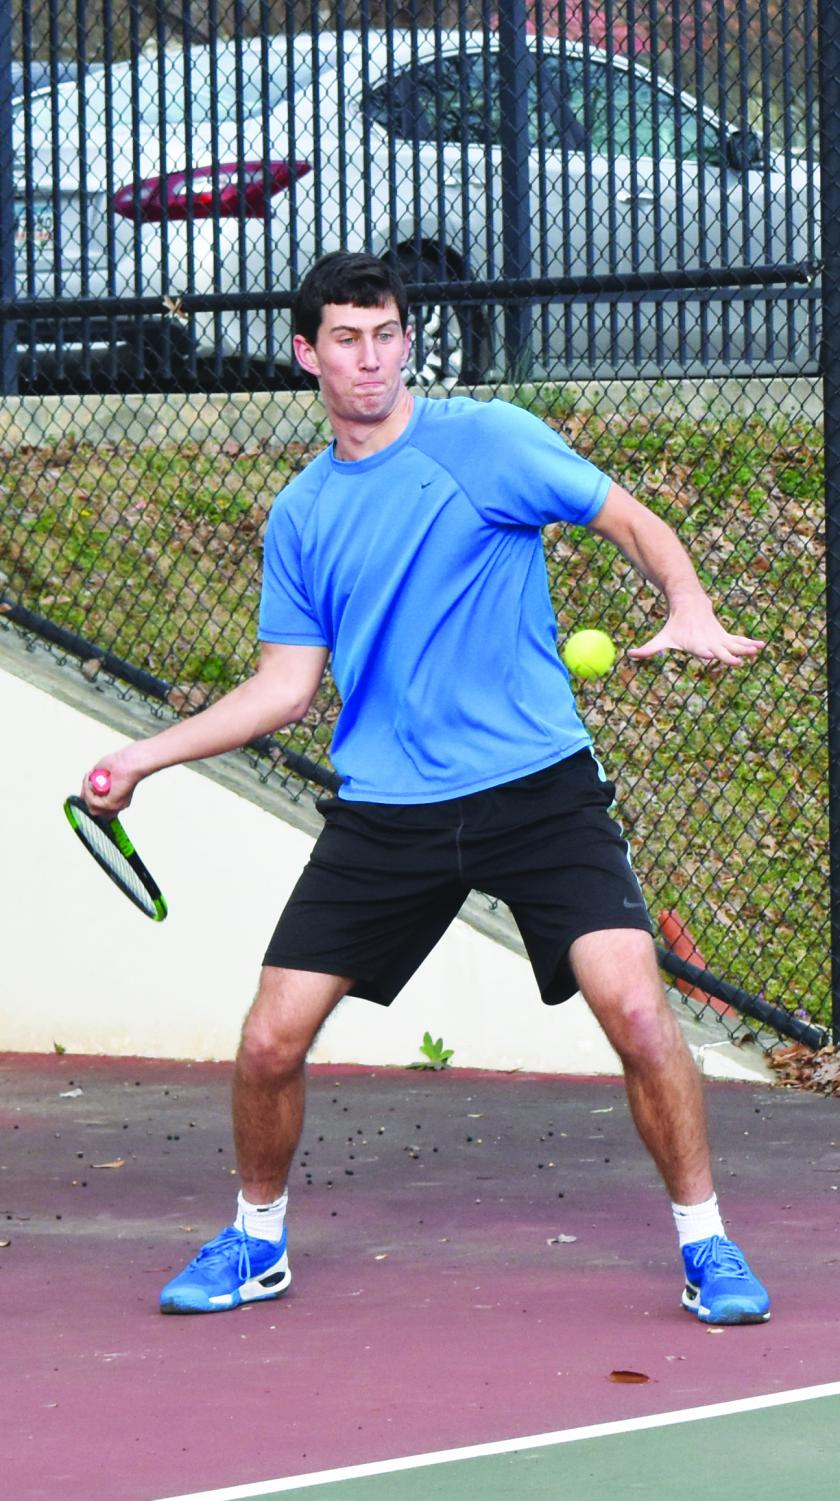 NOT YOUR AVERAGE WOLFE: Senior Josh Wolfe strikes a forehand during tennis practice on Feb. 23. He is signed to attend Lafayette College next fall to play tennis.